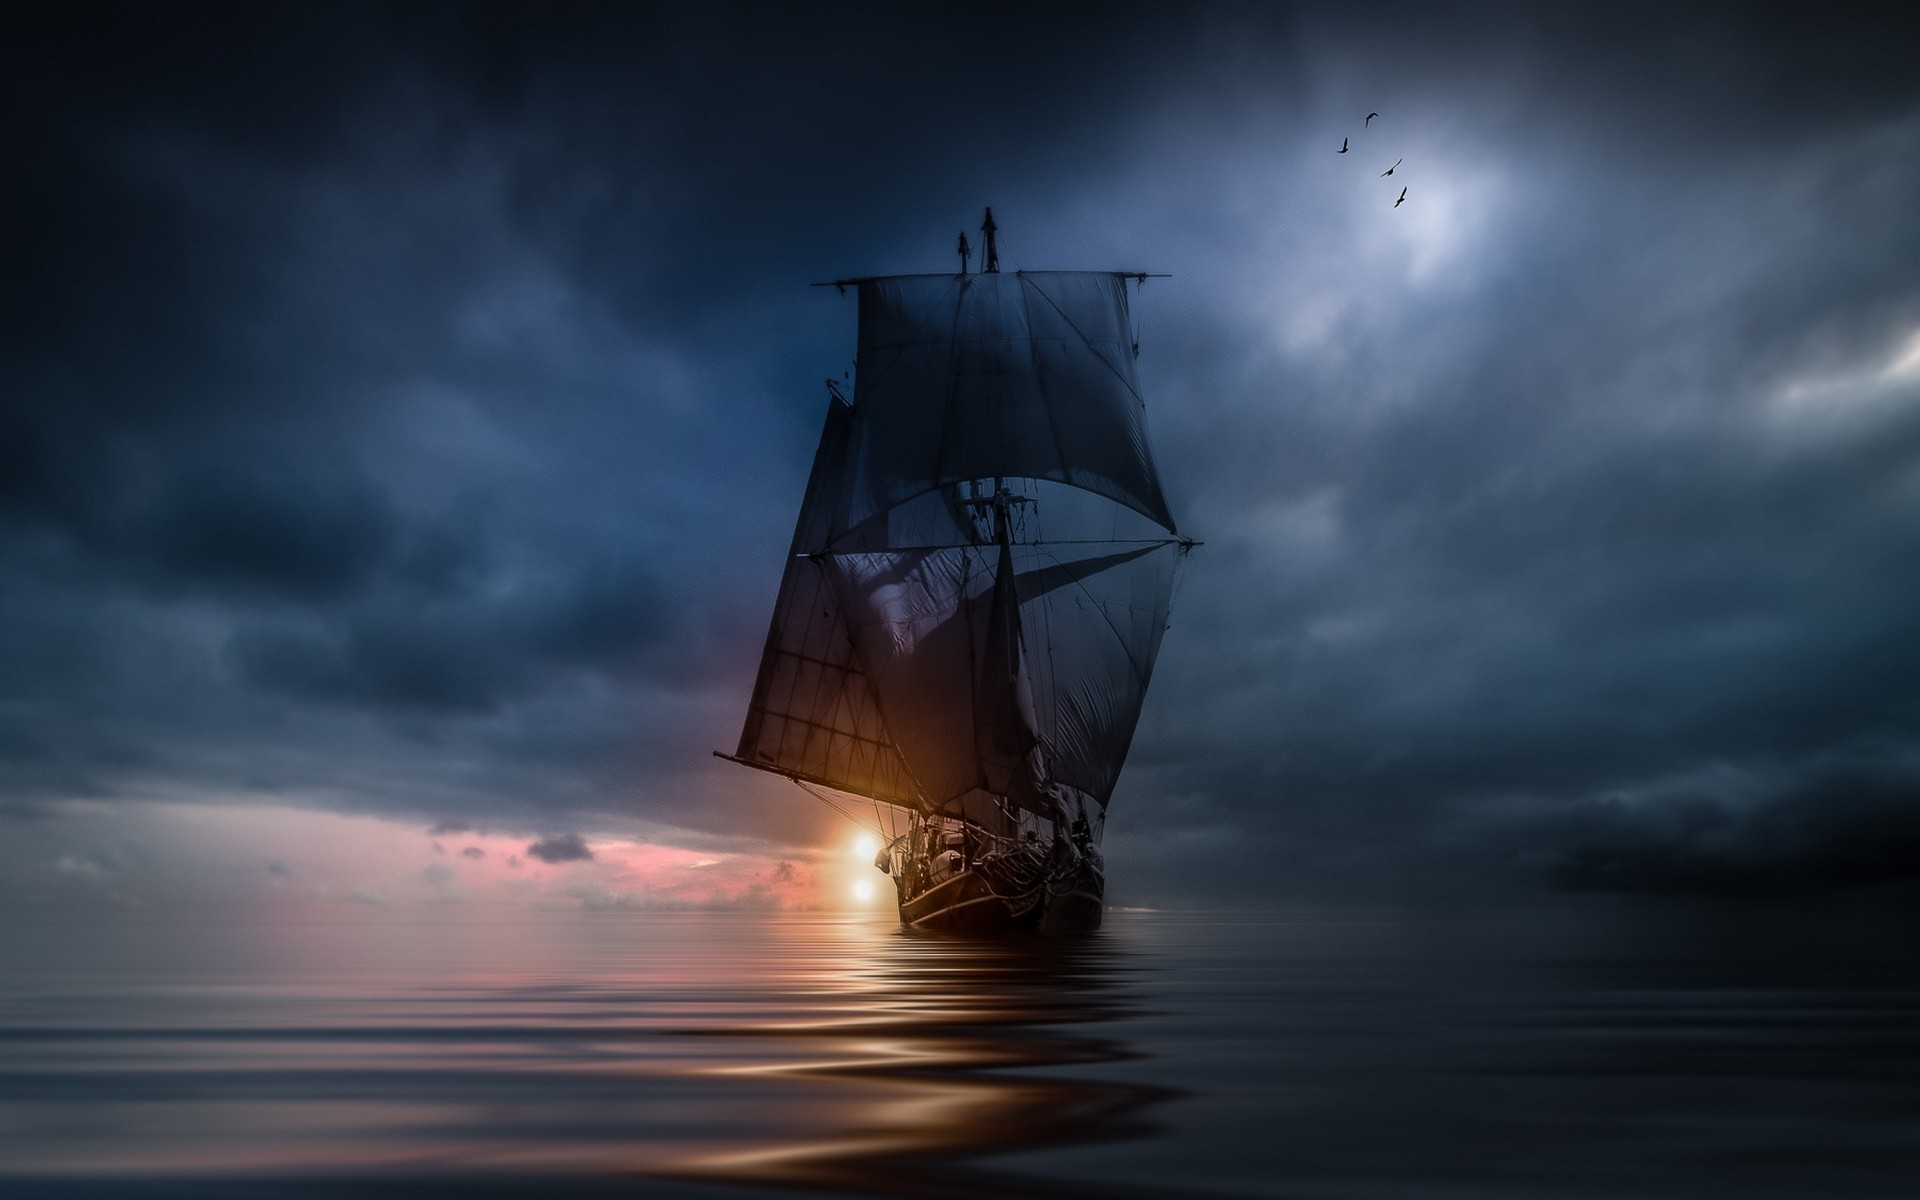 1920x1200 2560x1600 2560x1600 Pirates images Pirate Ship HD wallpaper and background  photos | HD Wallpapers | Pinterest | Pirate ships, Wallpaper and Pirate  images